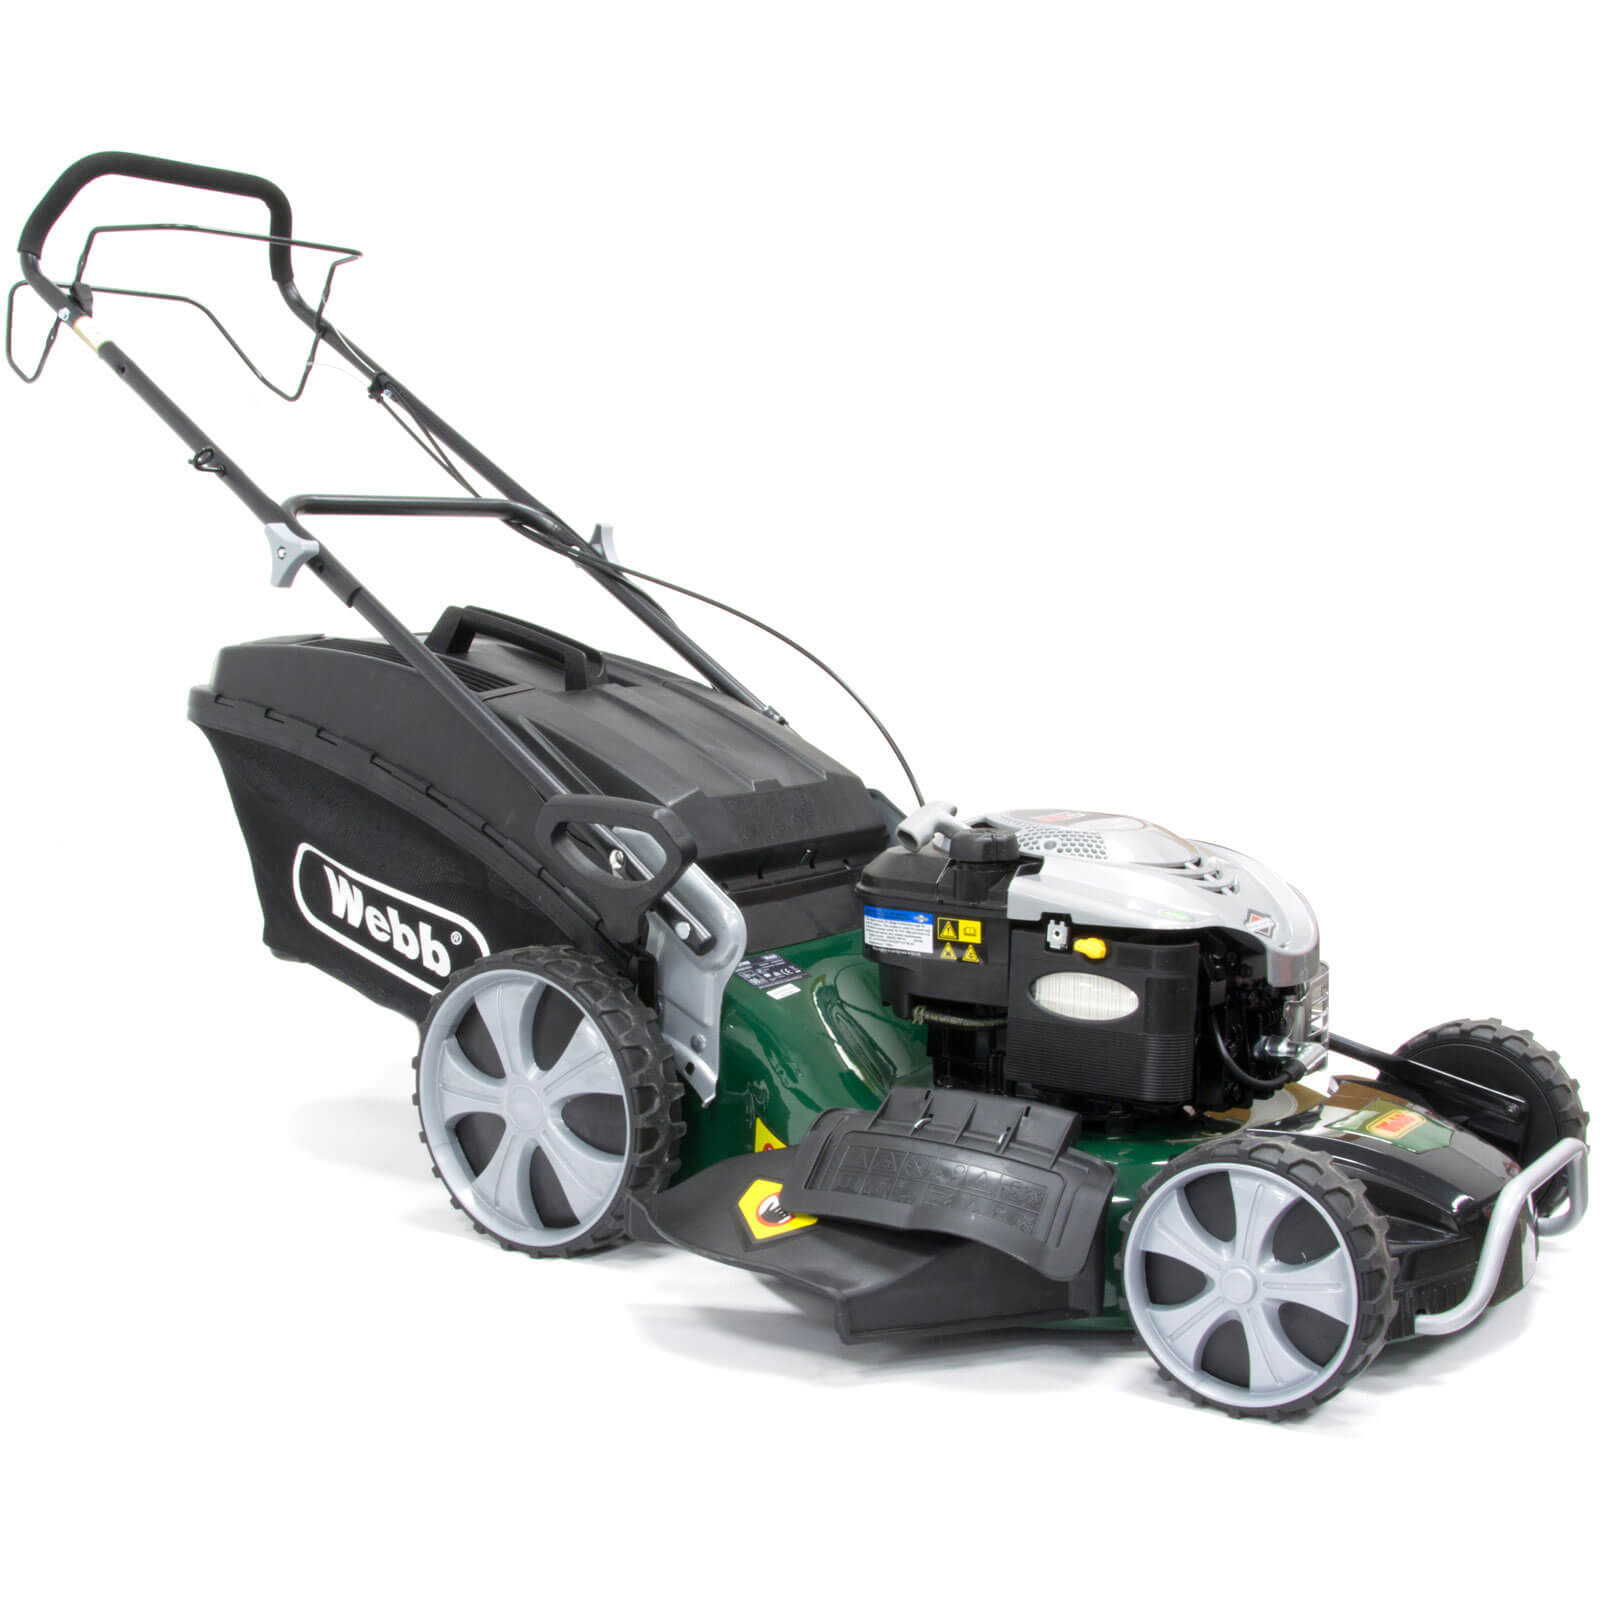 Webb R21HW Self Propelled Petrol 4 in 1 Rotary Lawn Mower 530mm Cut Width with Briggs & Stratton 675 Series Engine